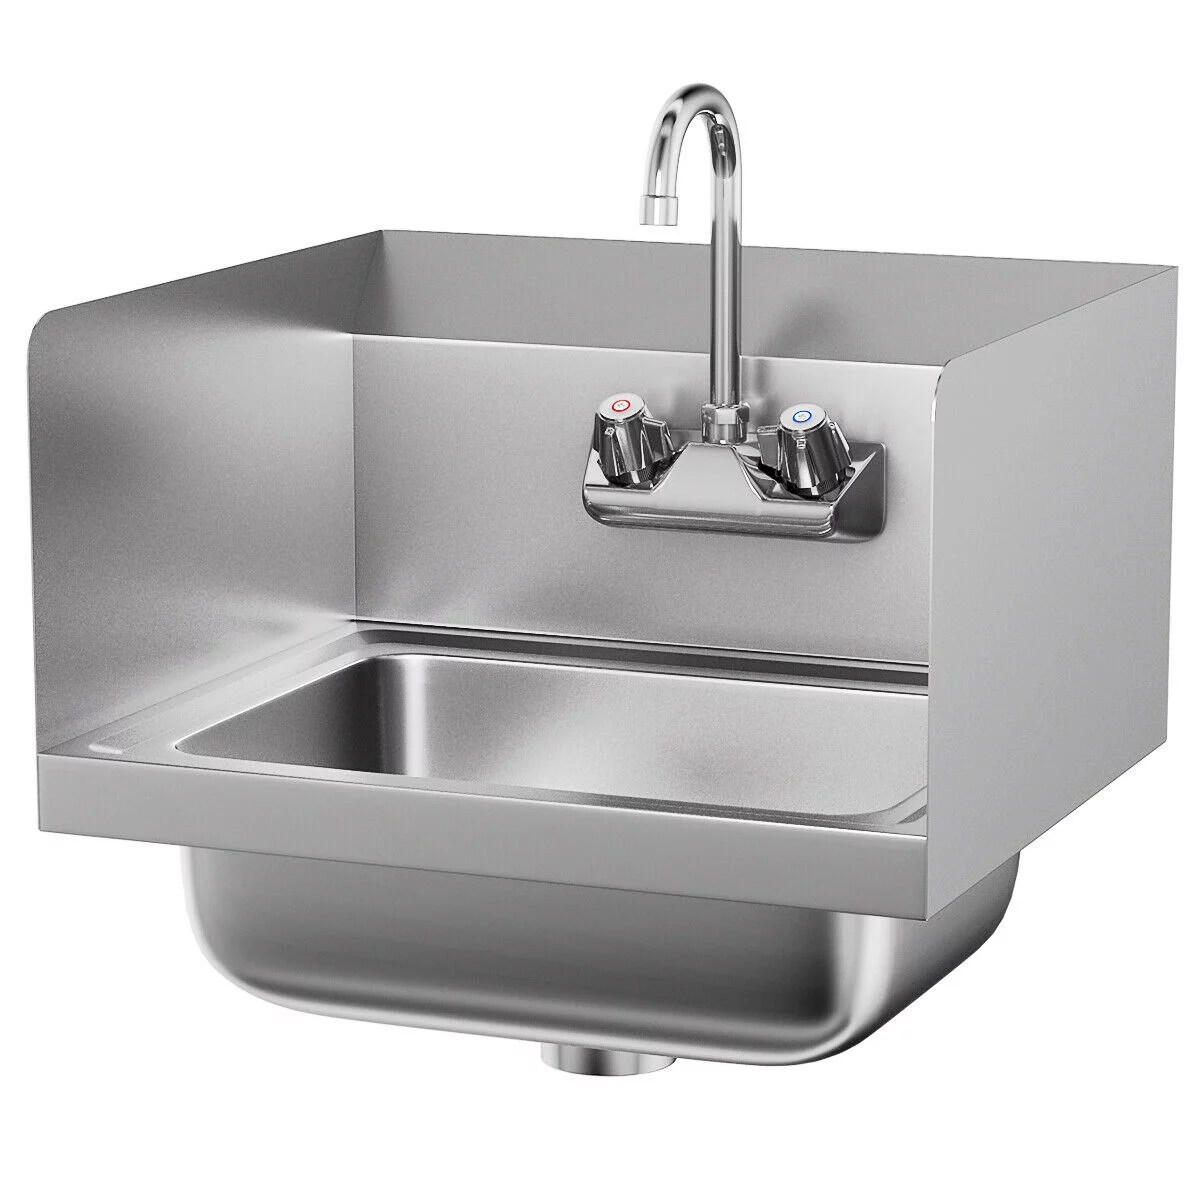 costway stainless steel hand washing sink nsf commercial with faucet and side splashes walmart com